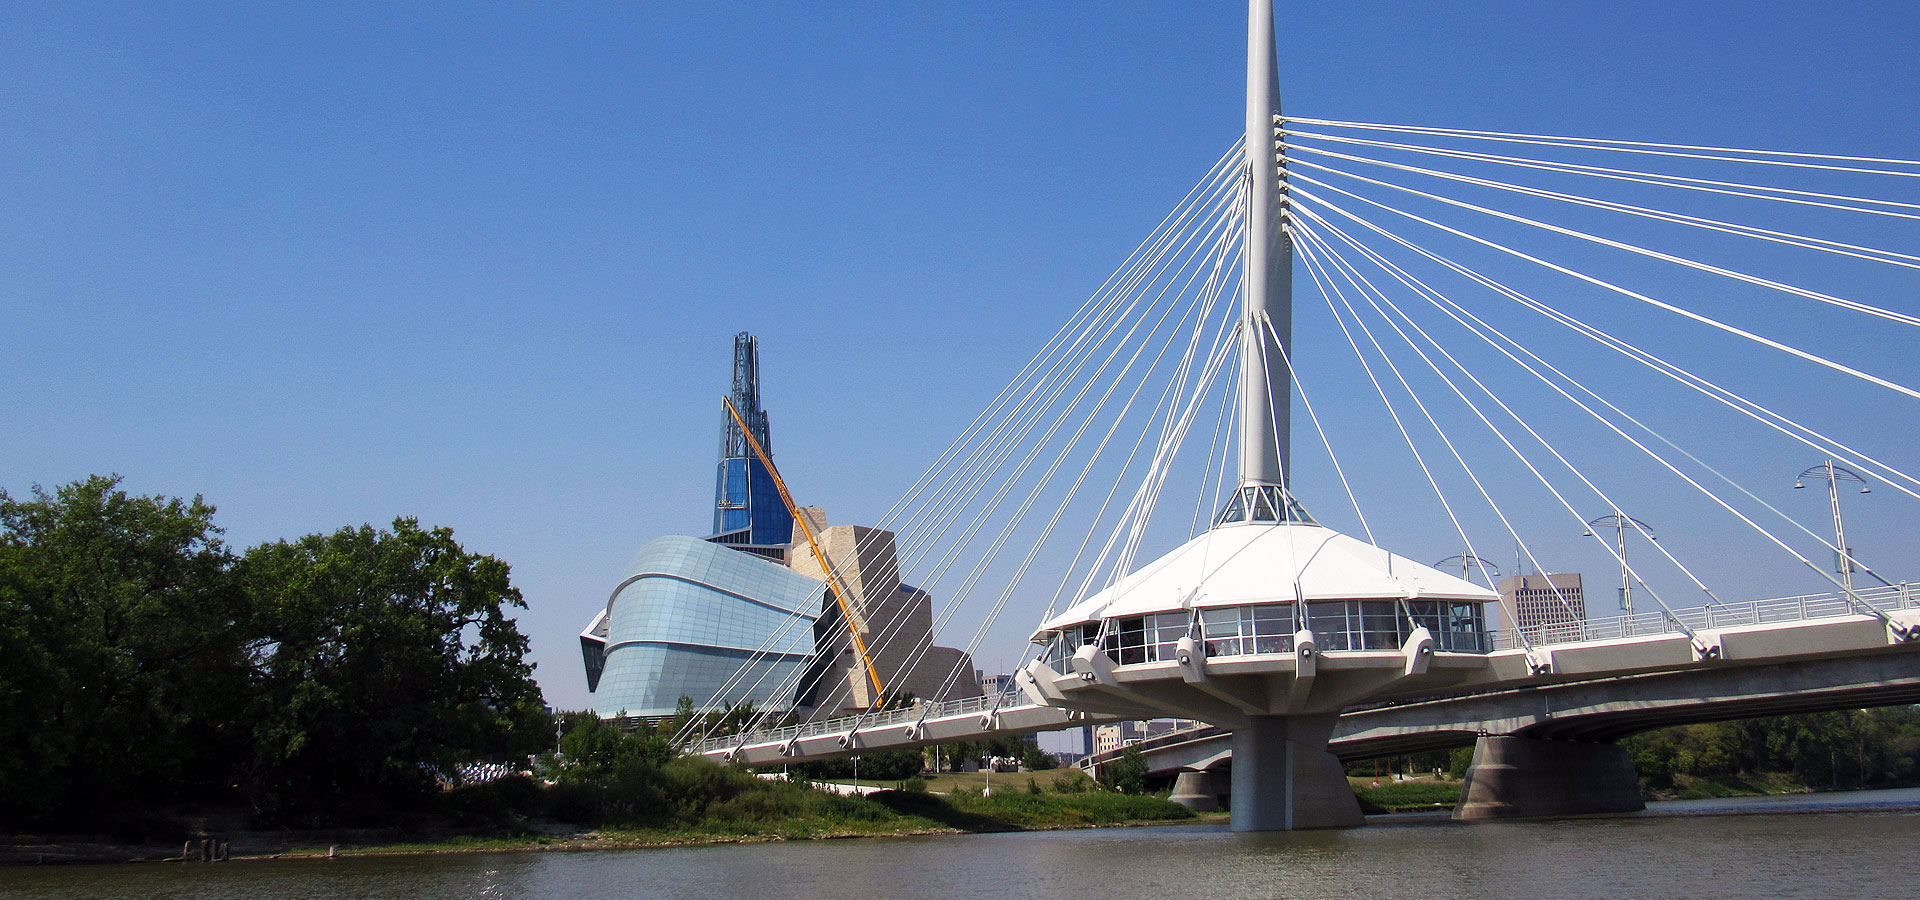 River way in Winnipeg